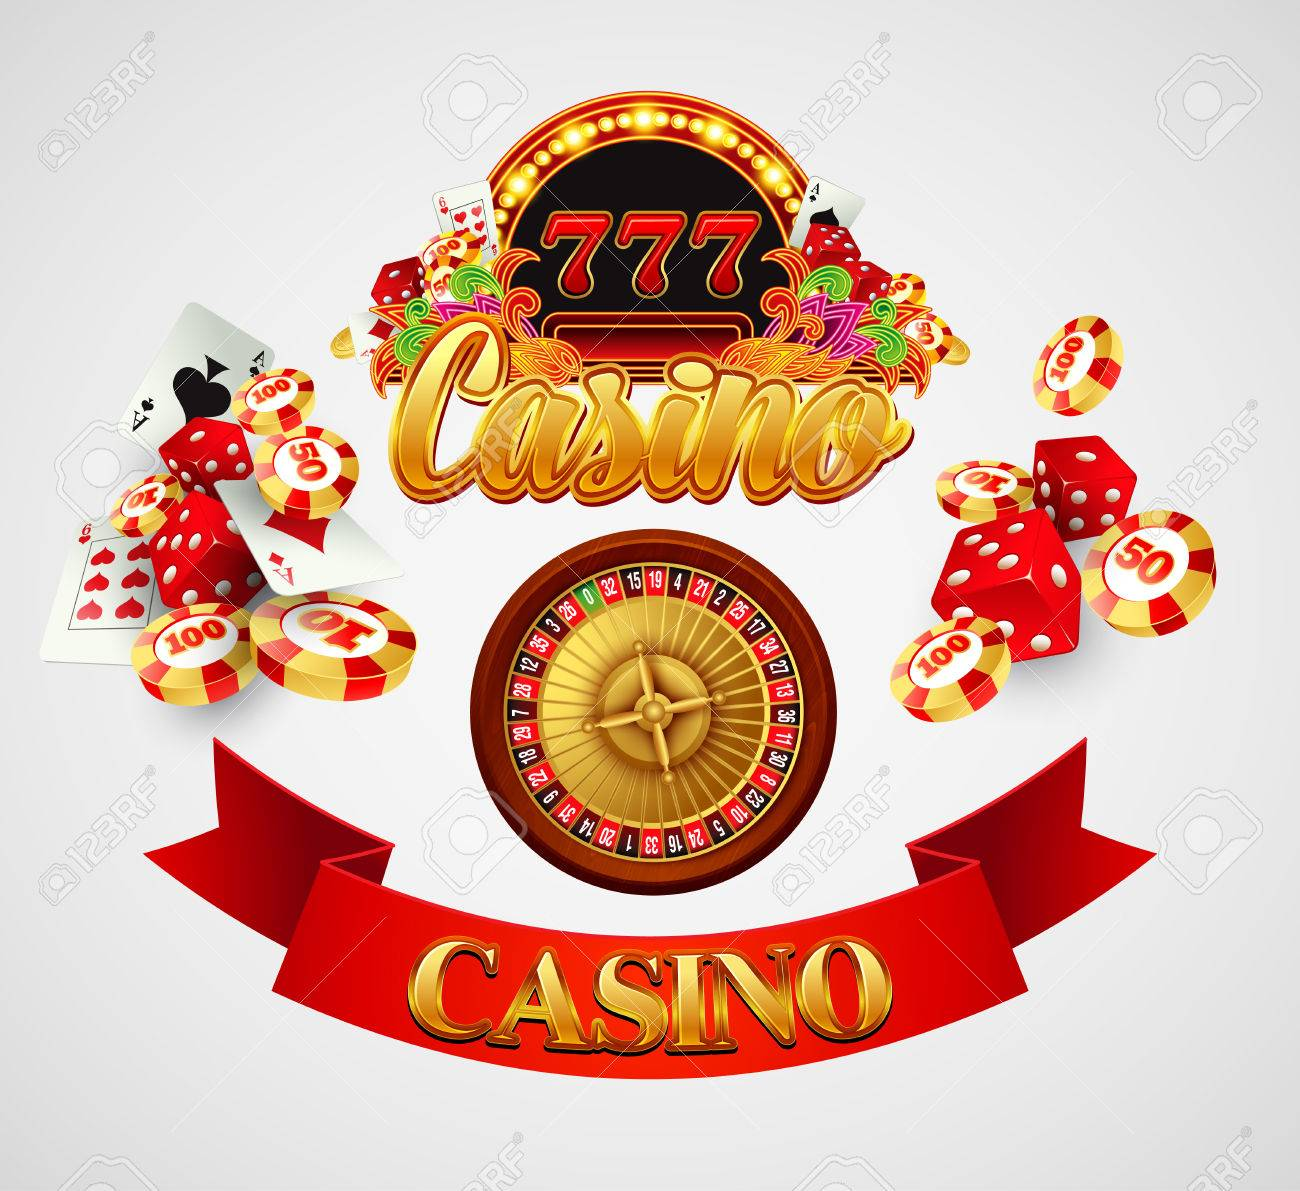 Traditional european roulette table vector illustration stock vector - American Roulette Casino Background With Cards Chips Craps And Roulette Vector Illustration